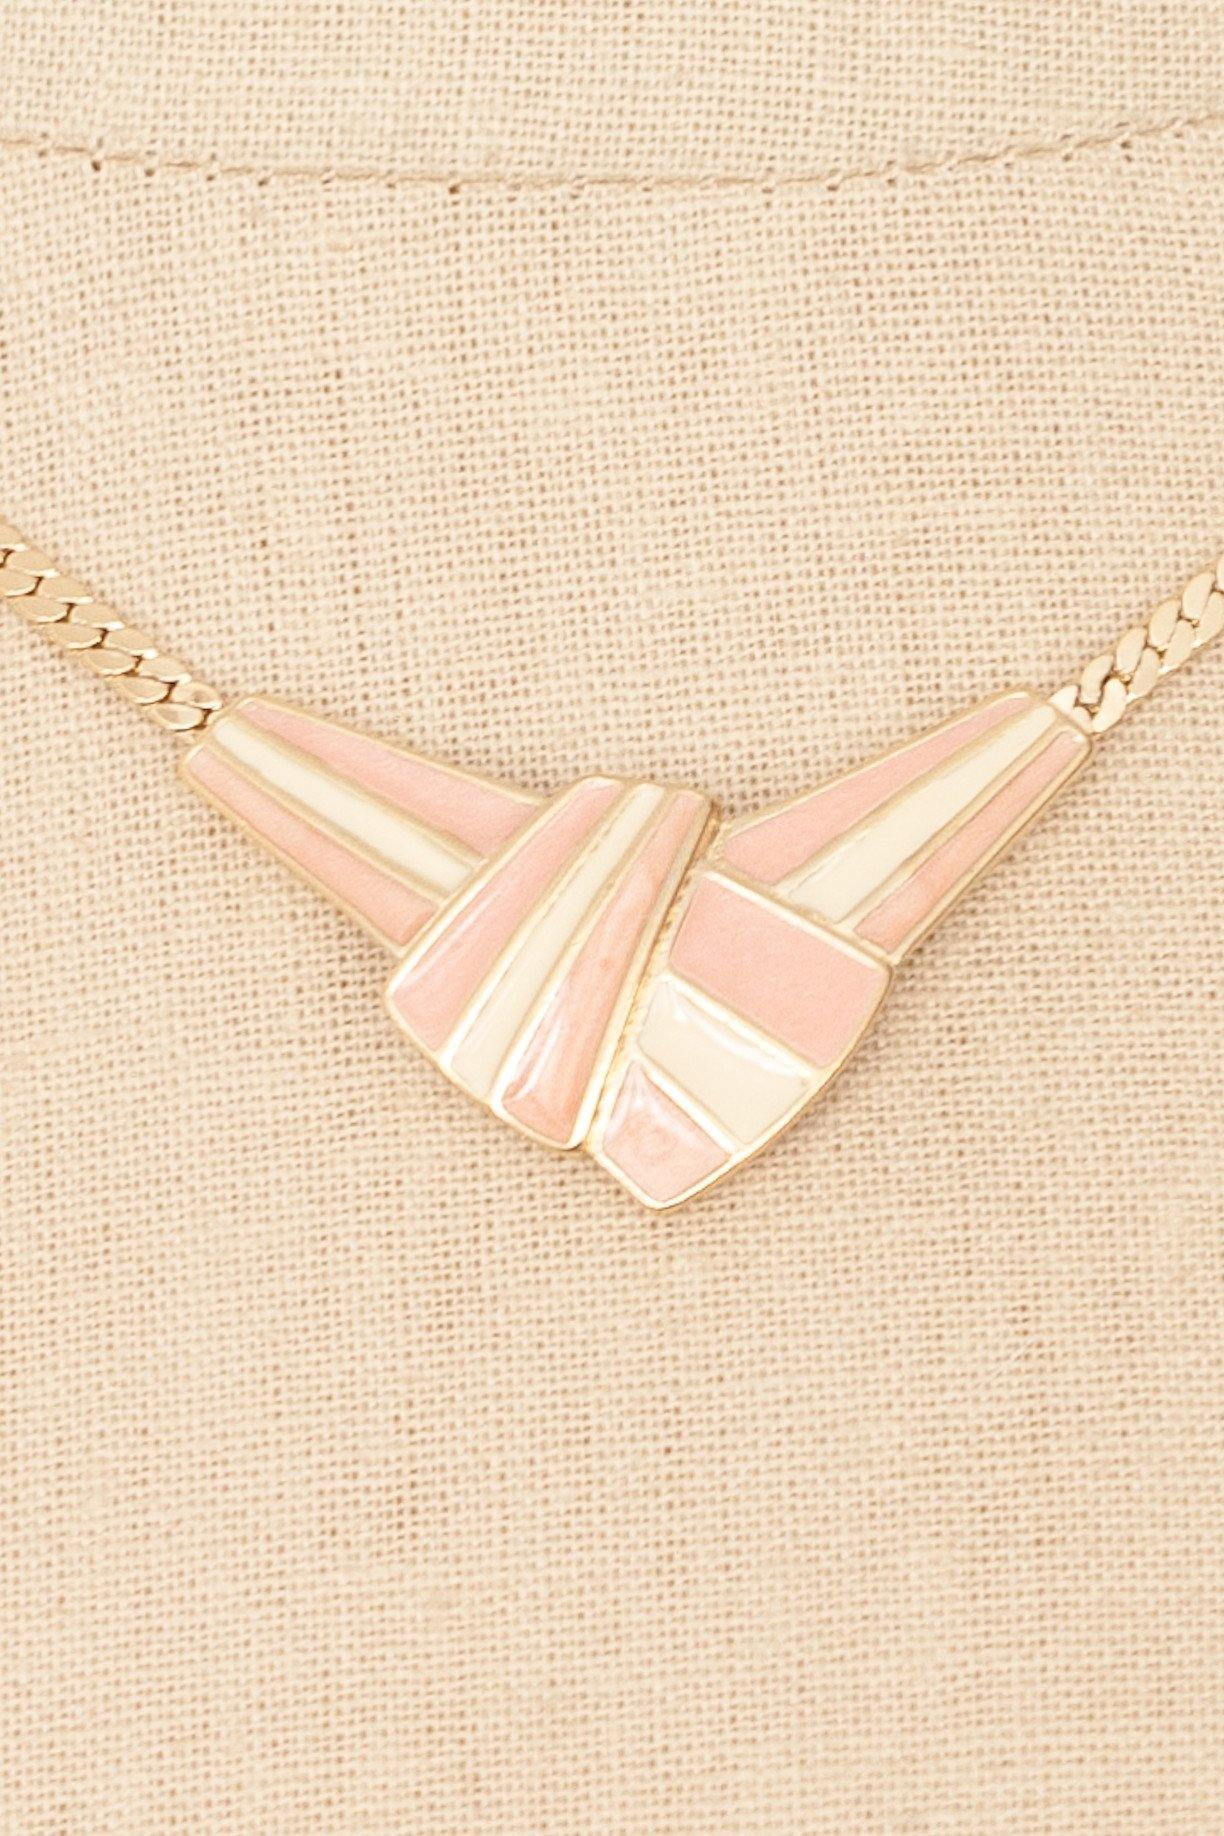 80's__Trifari__Enameled Pendant Necklace